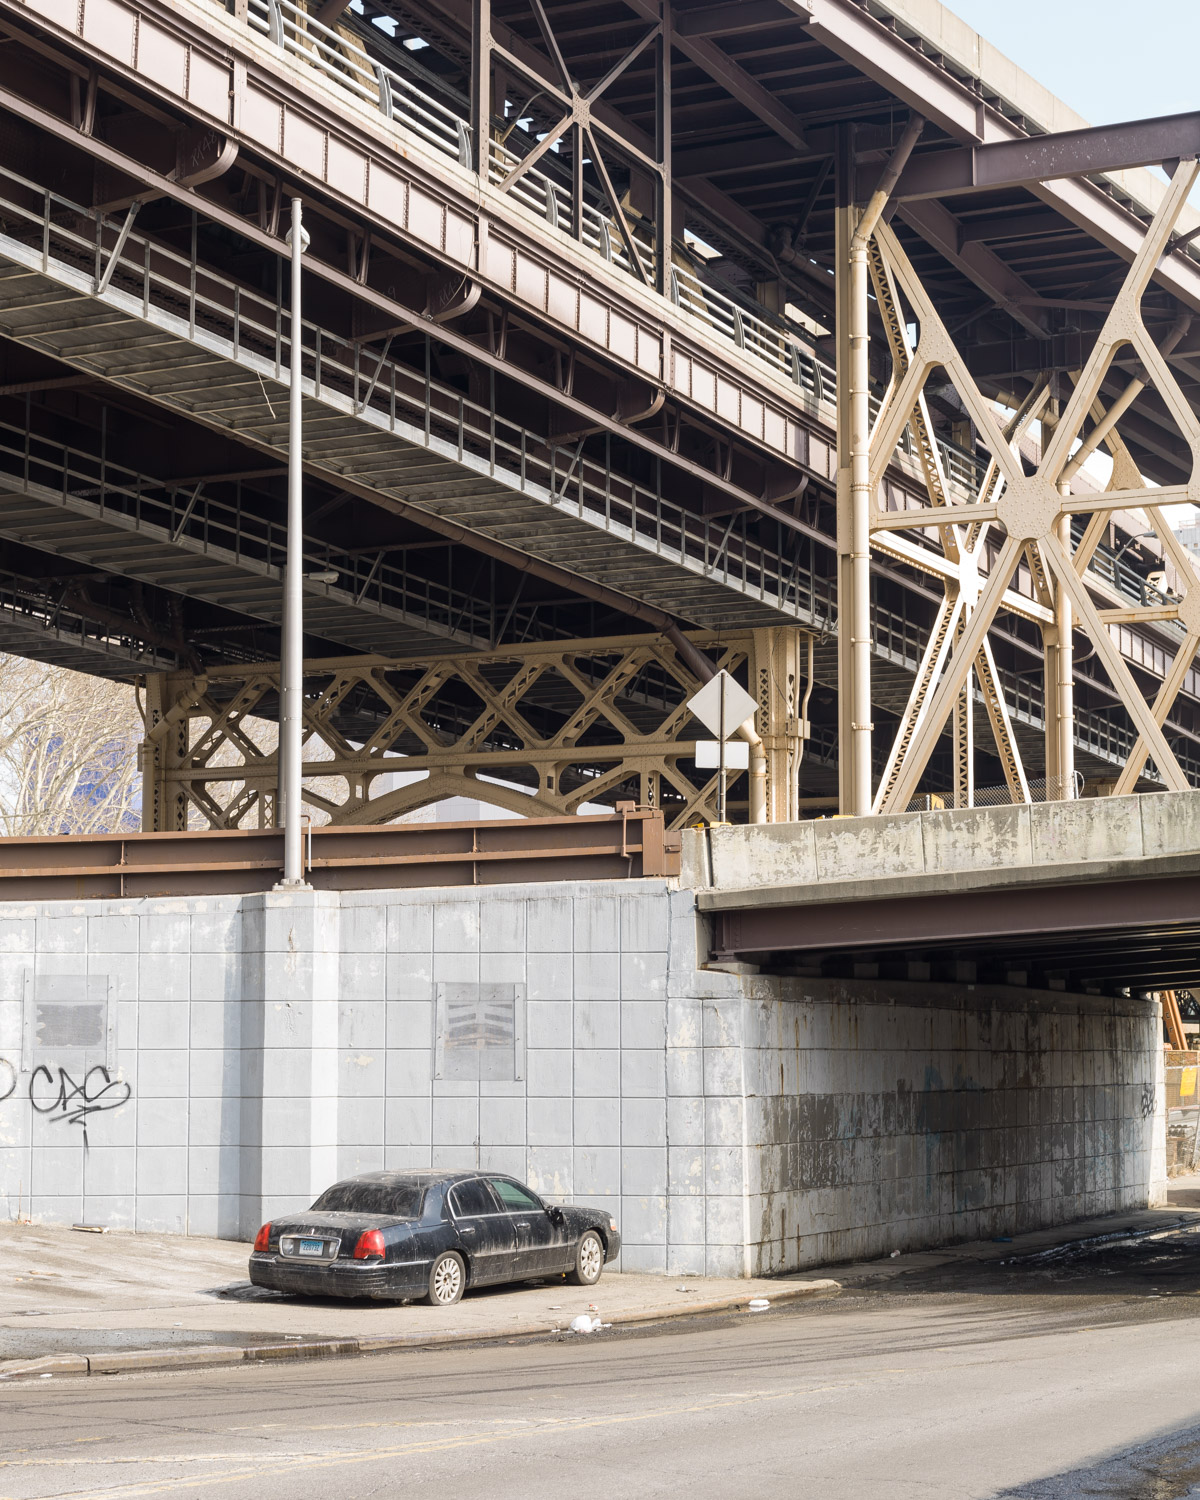 Queens Plaza South, New York, 2015